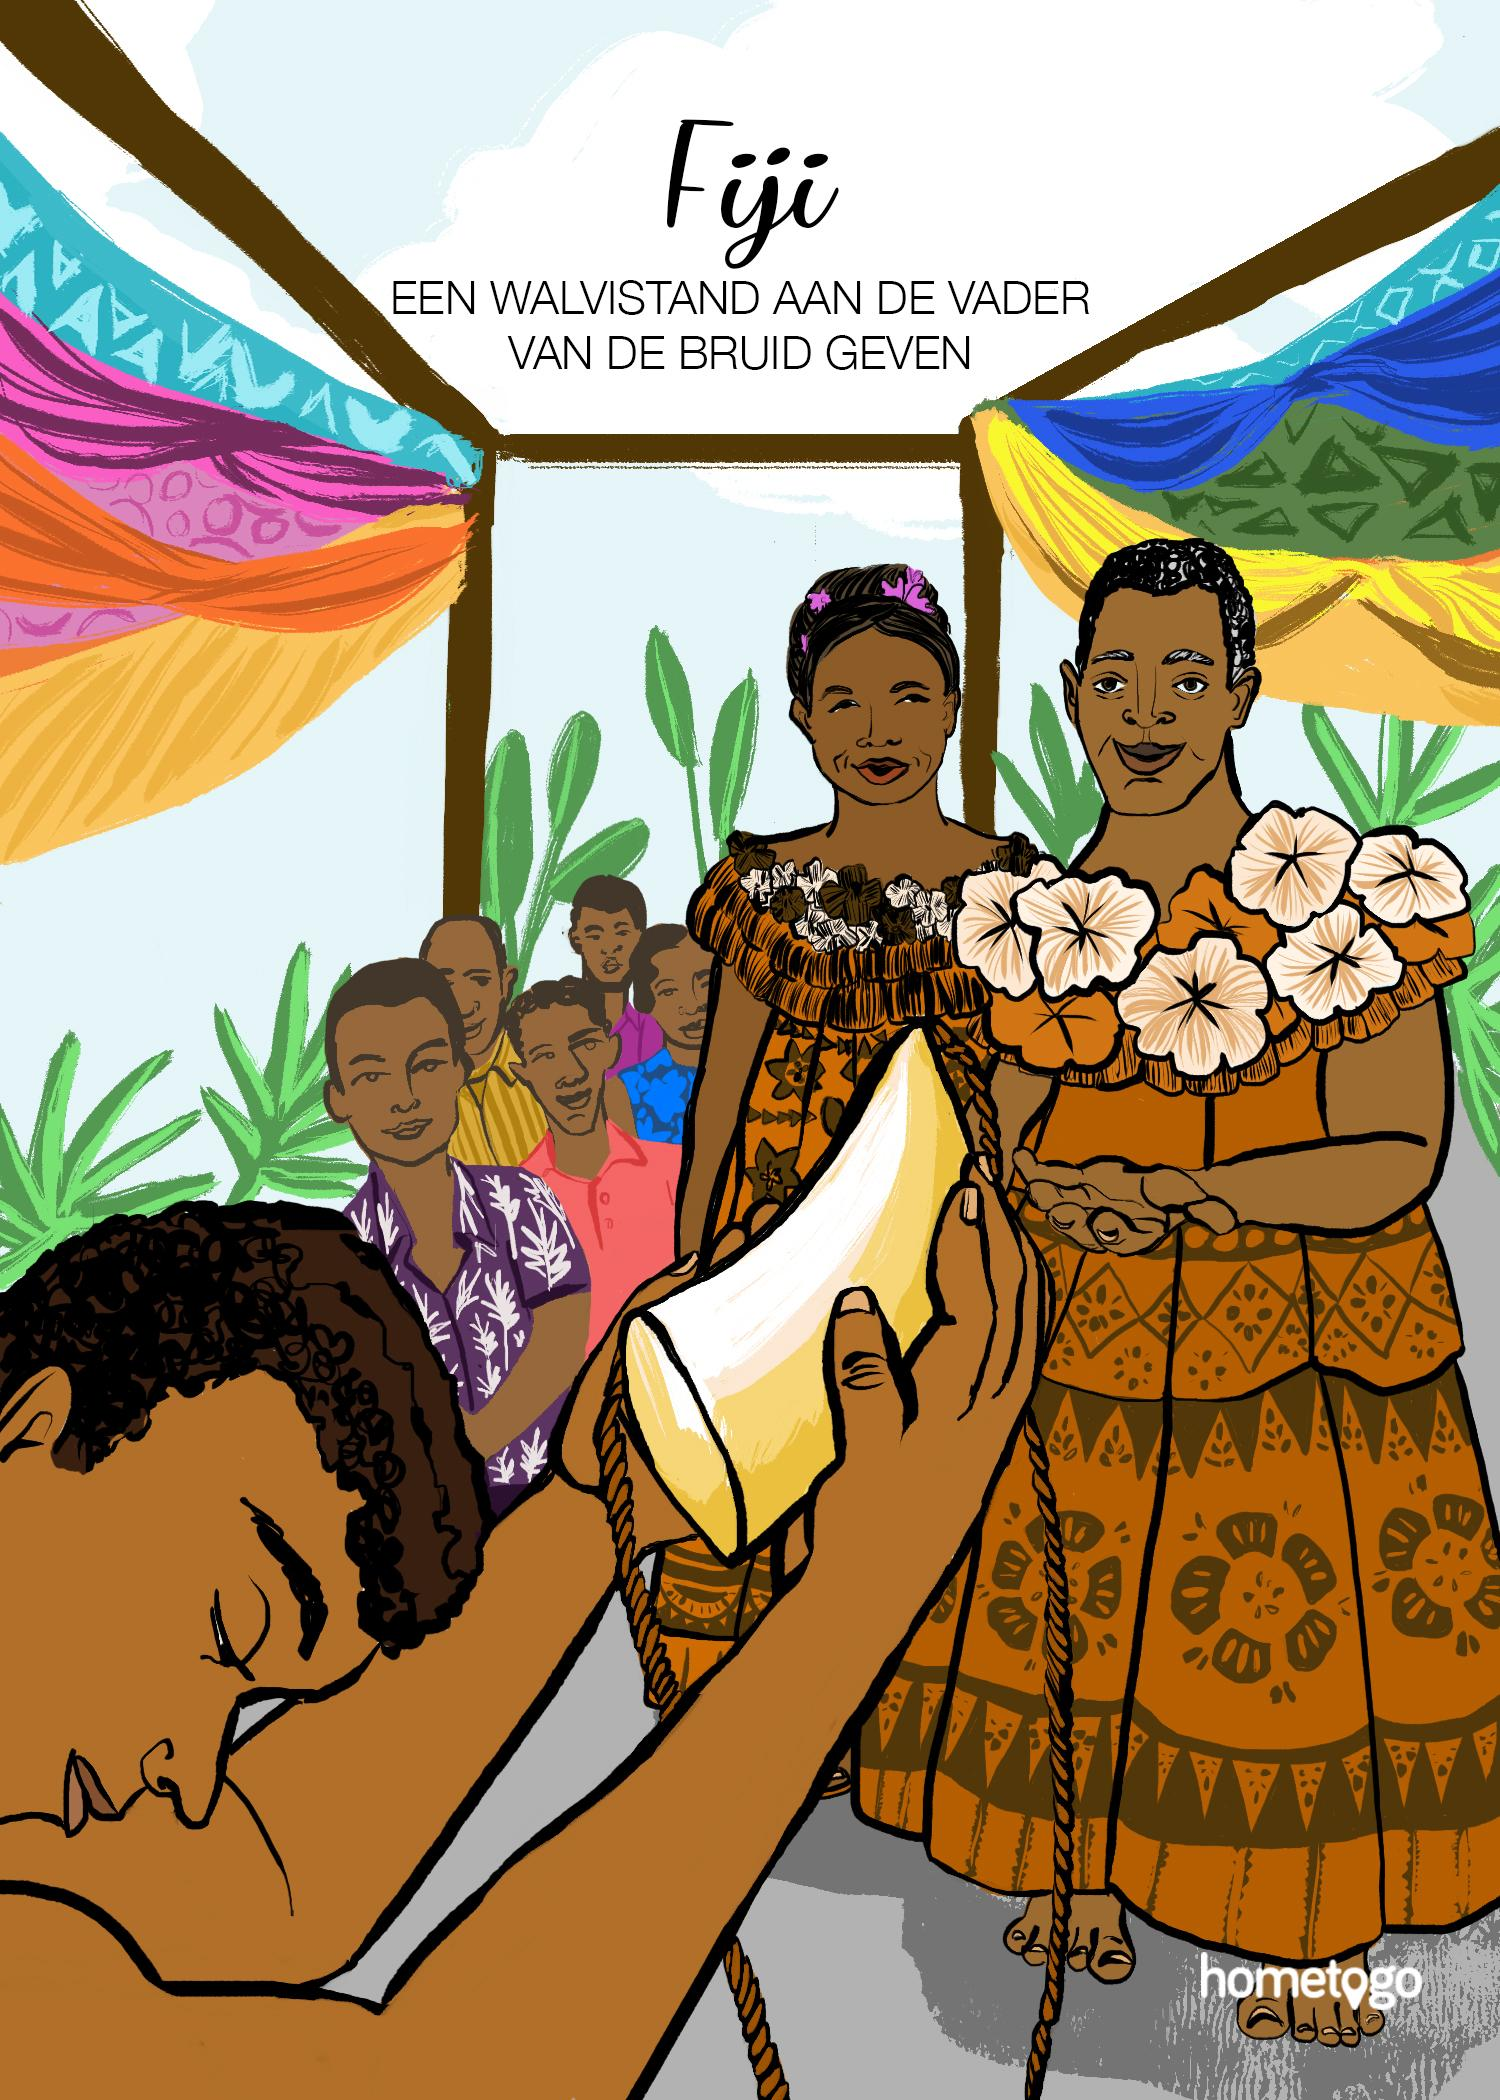 Illustration featuring the wedding custom from Fiji, where the groom has to offer a whale tooth to the bride's father